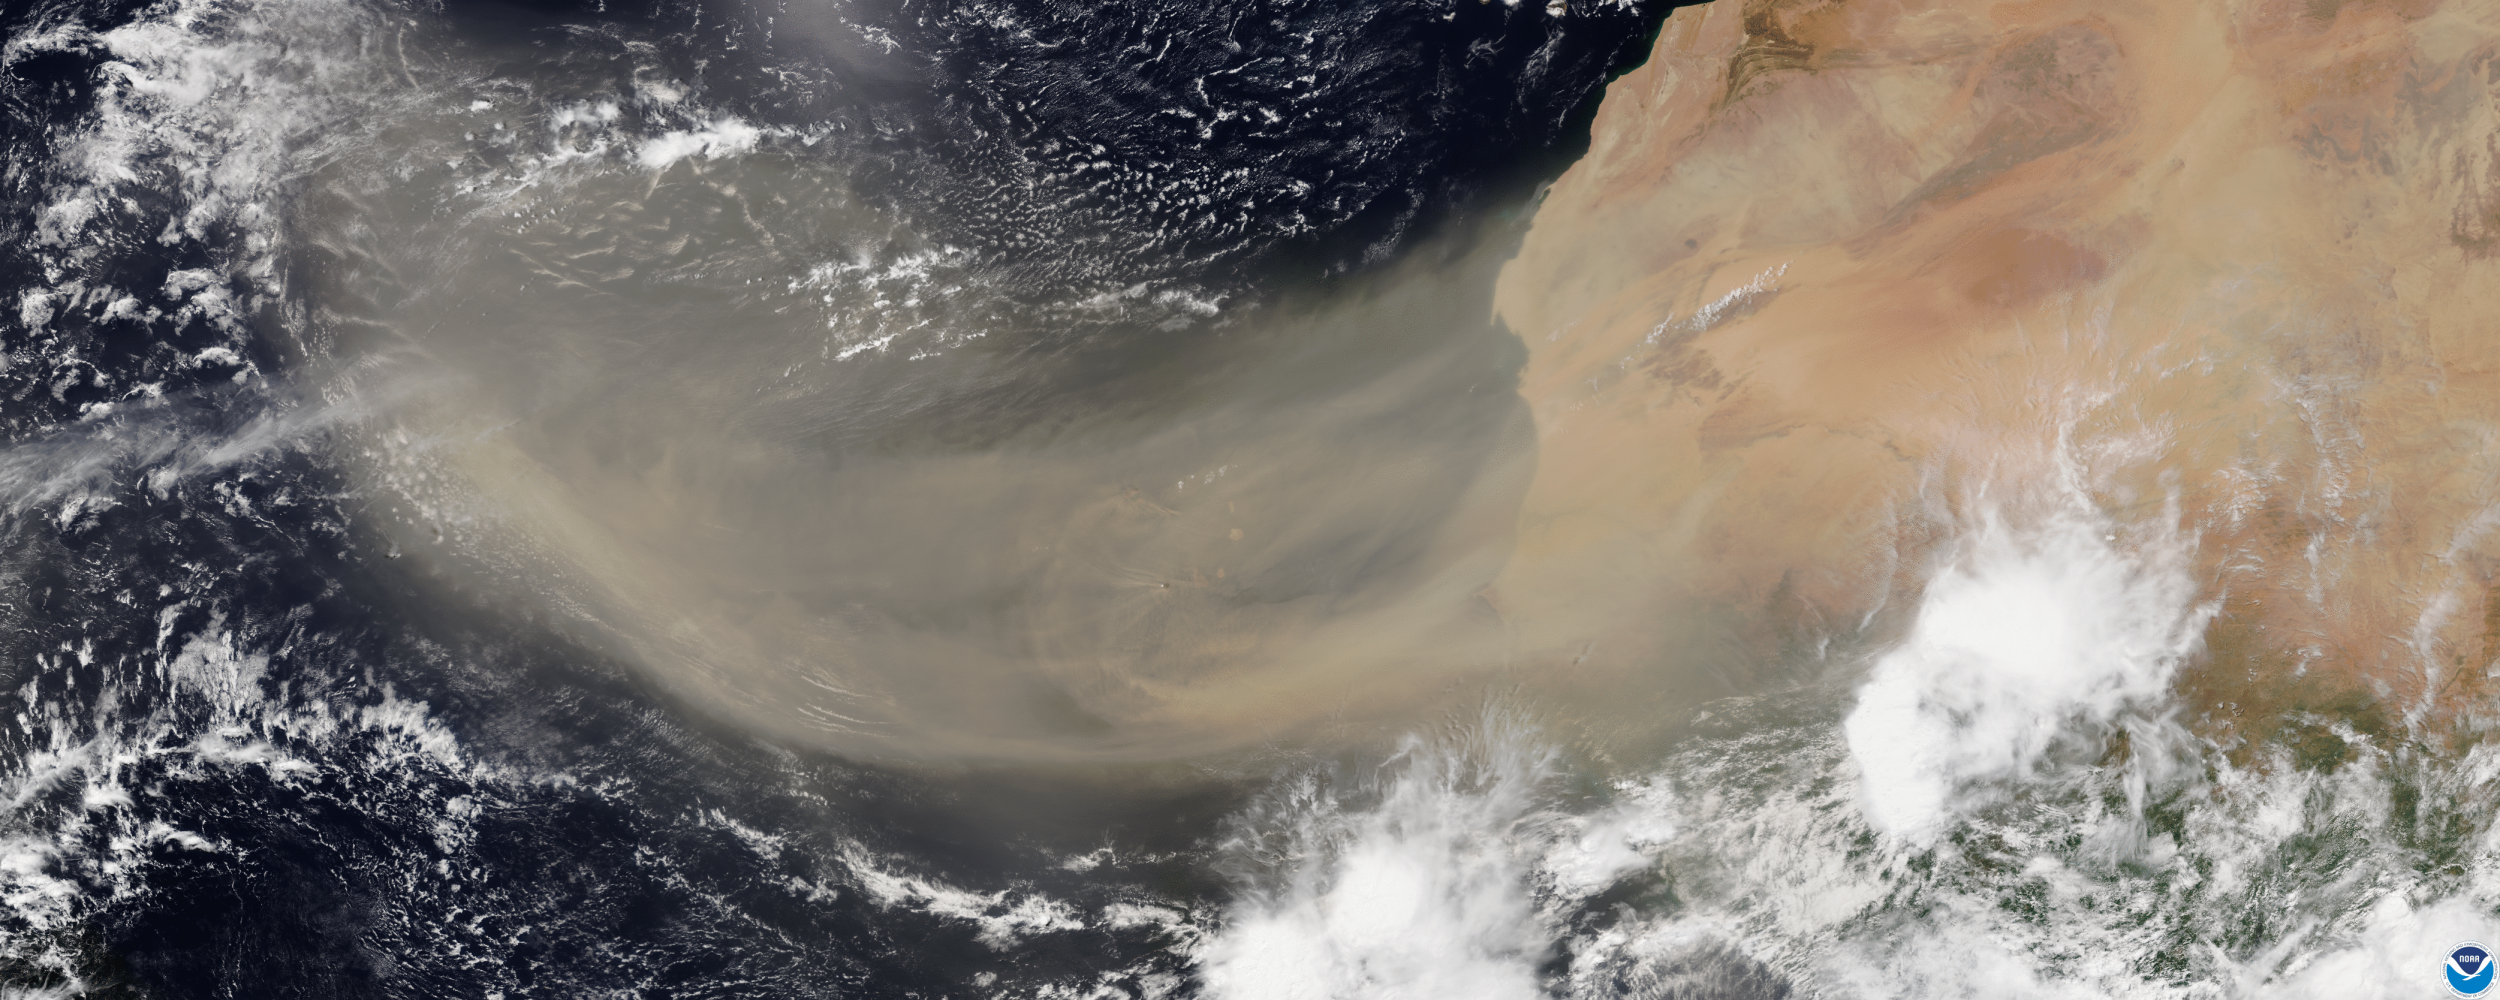 'Godzilla' Sahara dust cloud heading for U.S. may be biggest for 50 years